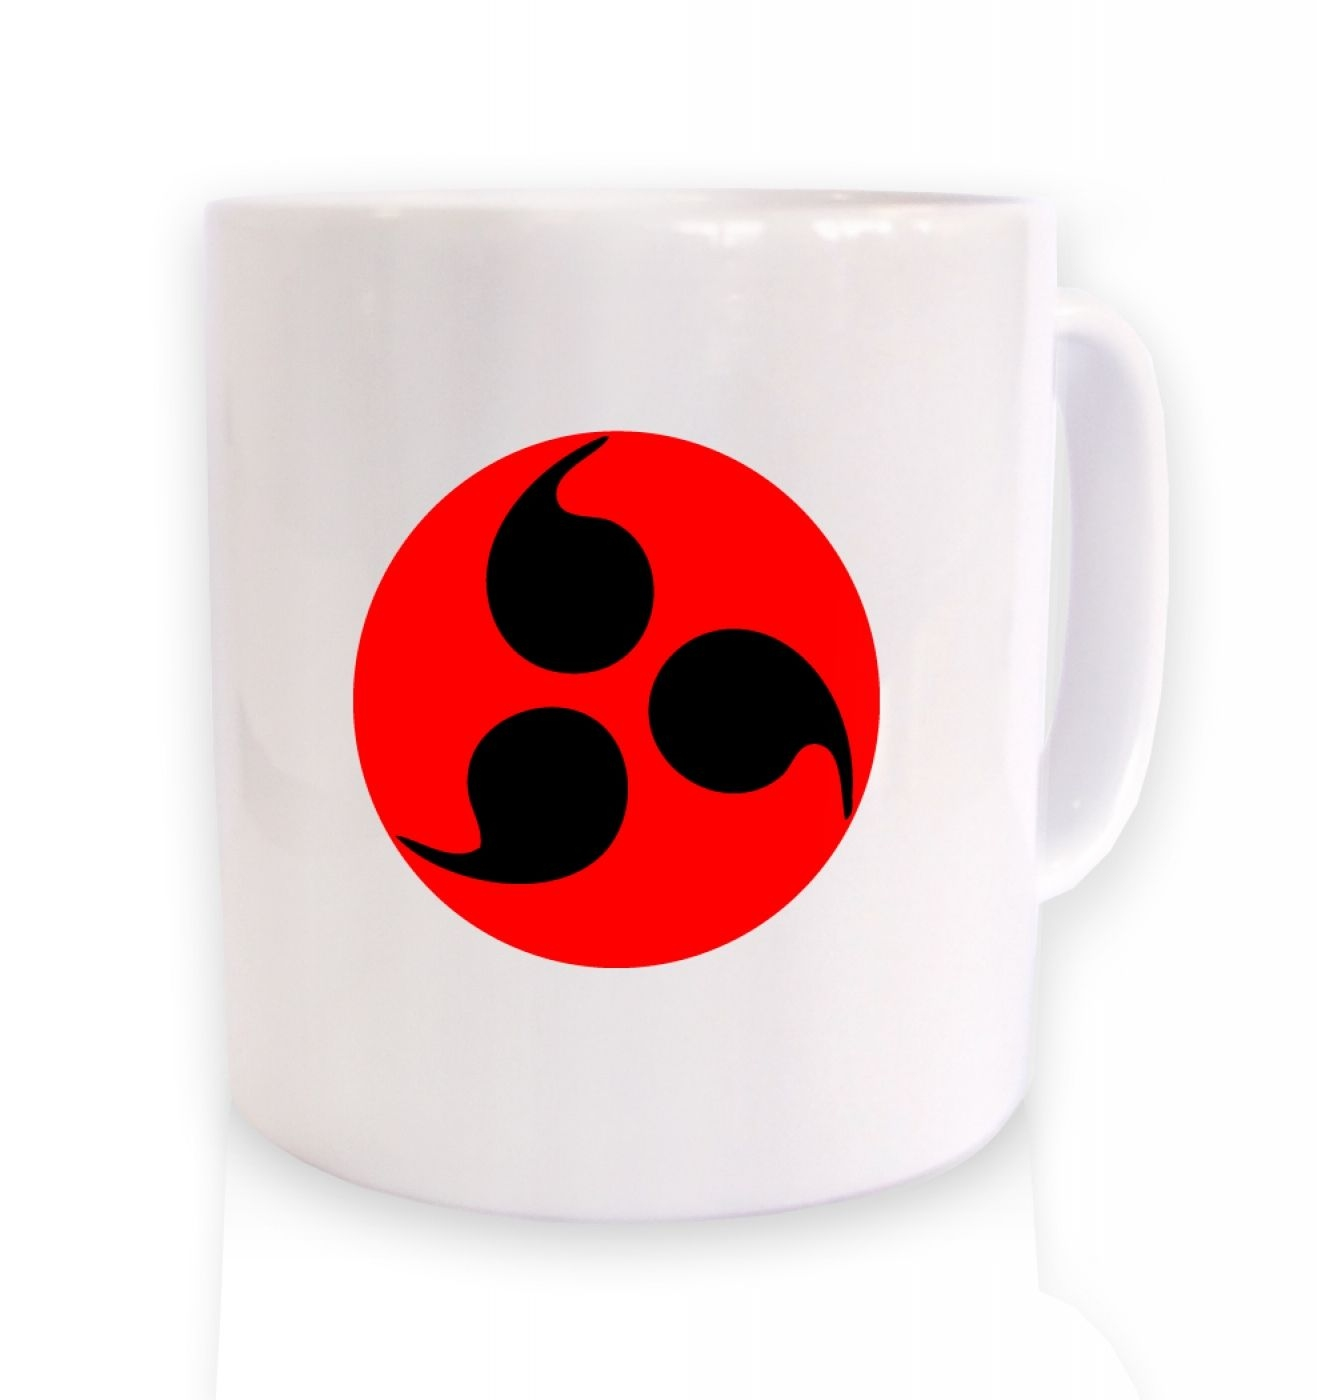 Sharingan Eye Mug - Inspired by Naruto